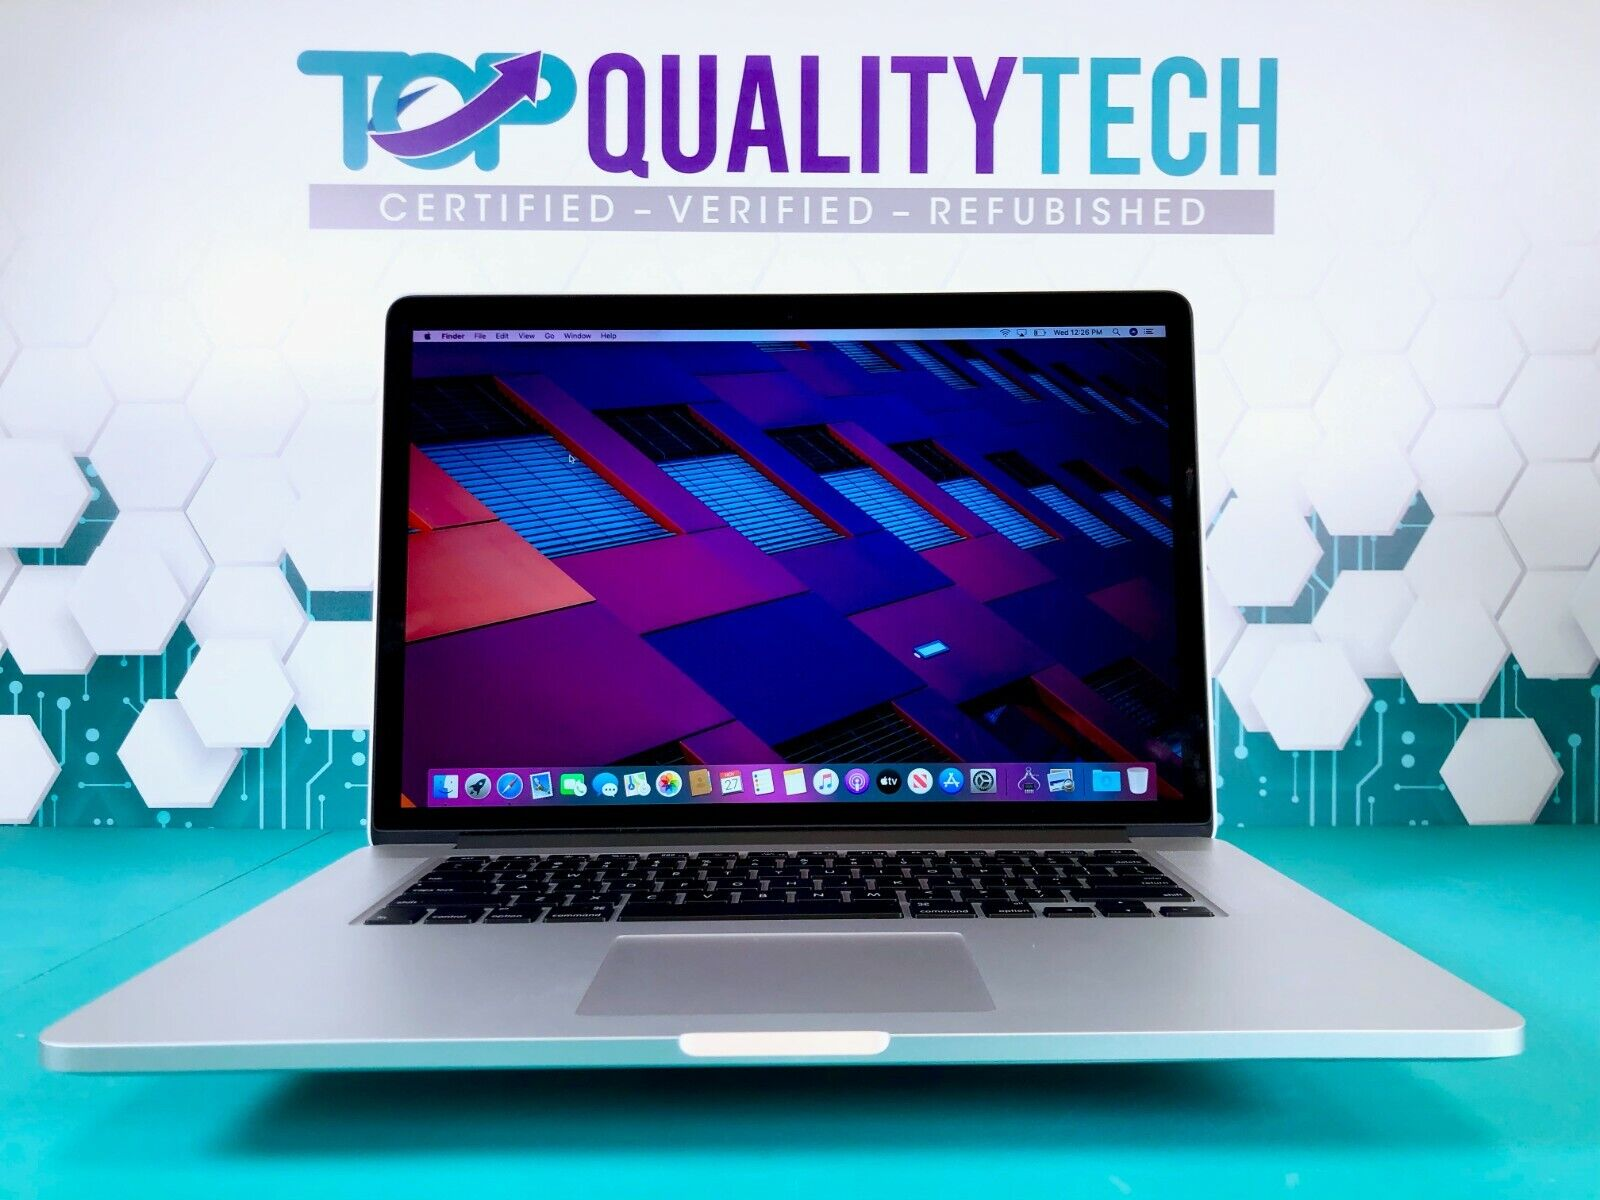 Apple MacBook Pro 15 inch Laptop / QUAD CORE i7 / 1TB SSD / Retina / 16GB RAM. Buy it now for 999.00